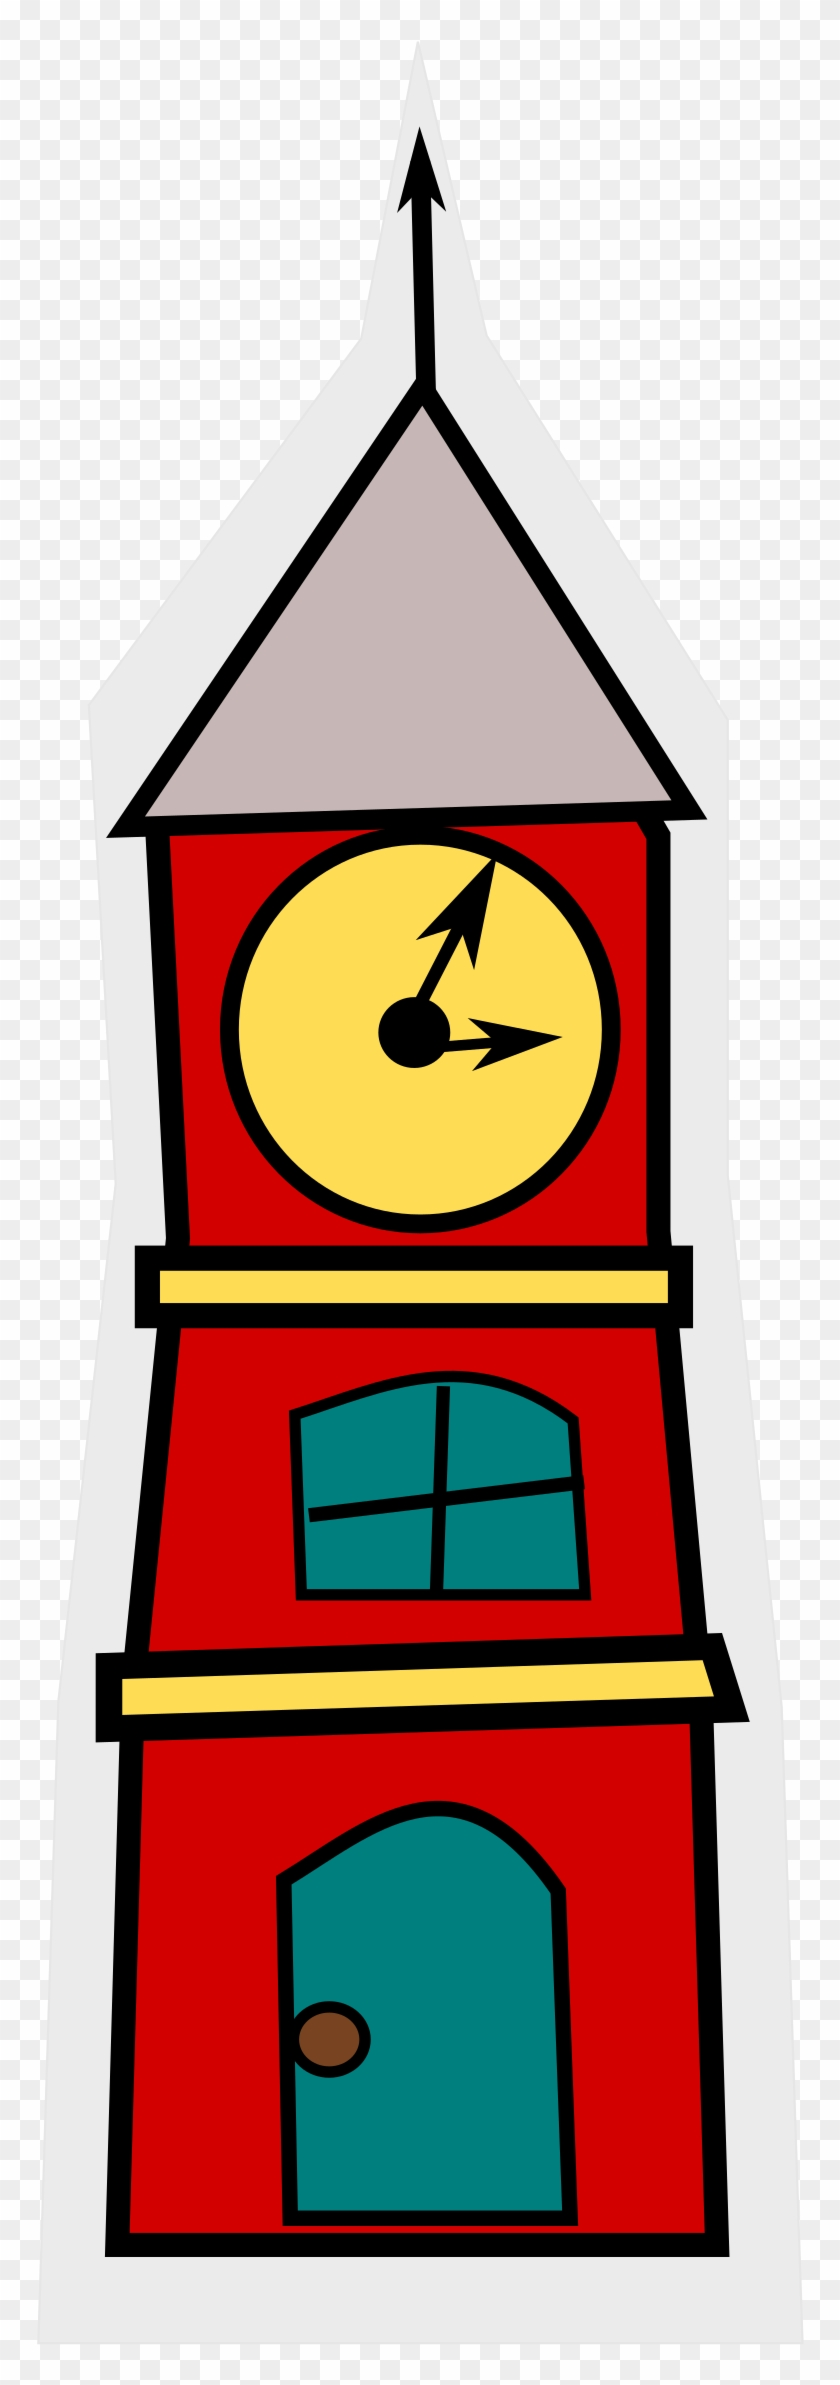 Town Council Clock Tower Cartoon Clipart - Clock Tower Clipart Png #19952